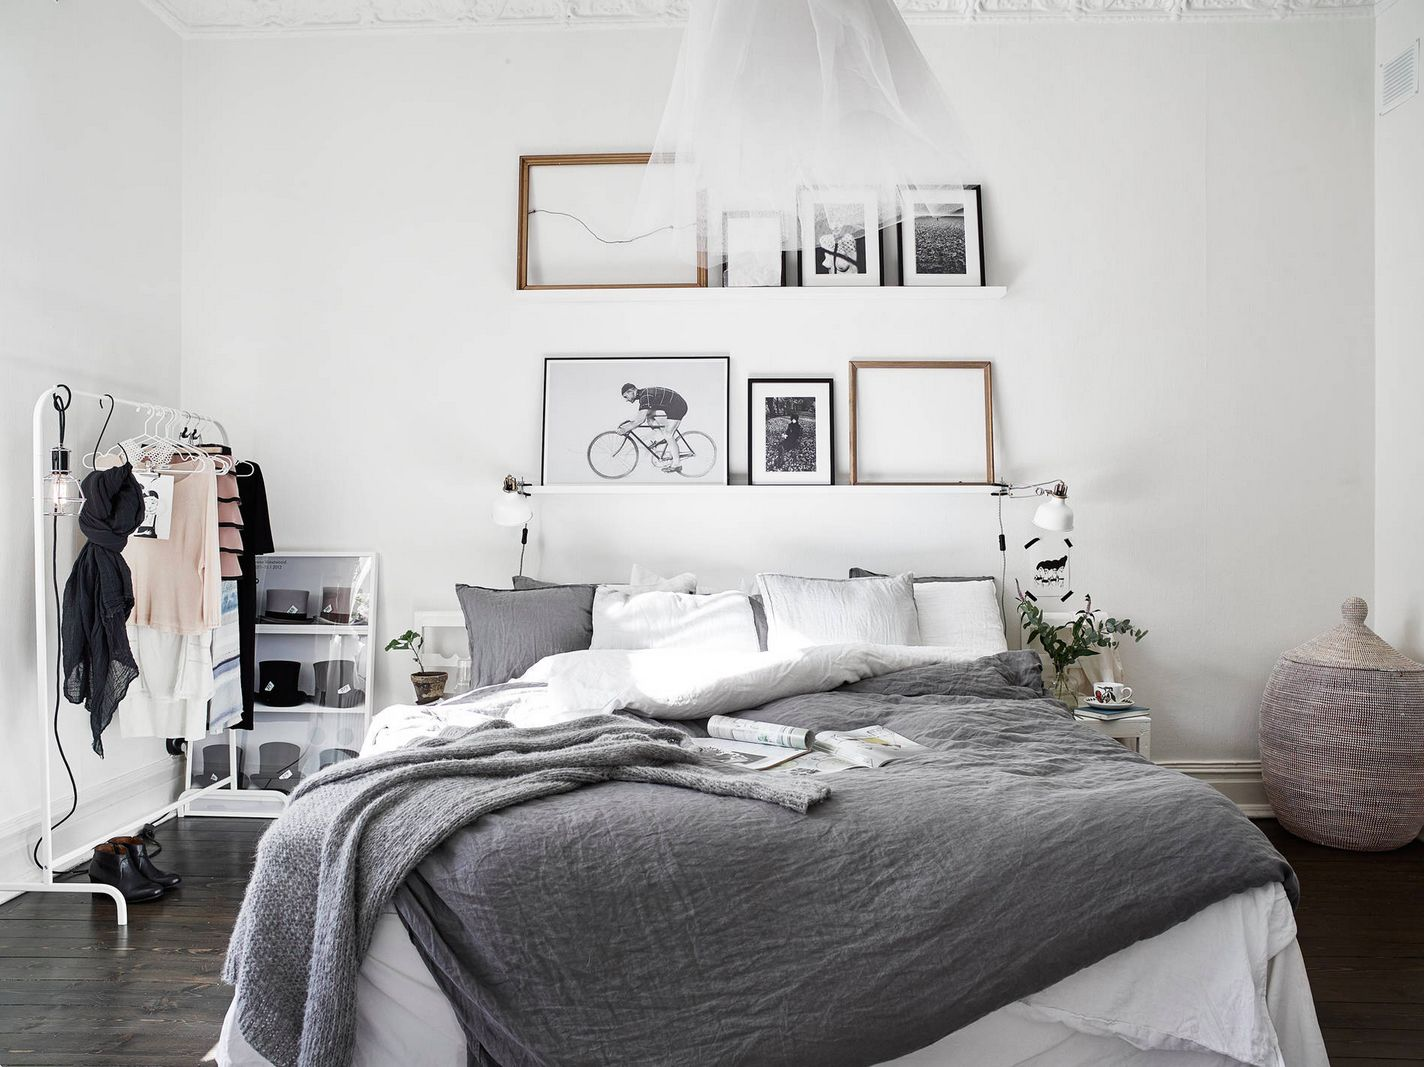 Room Makeover Tumblr Bedroom Design Beautiful Bedroom Inspirations How To Make